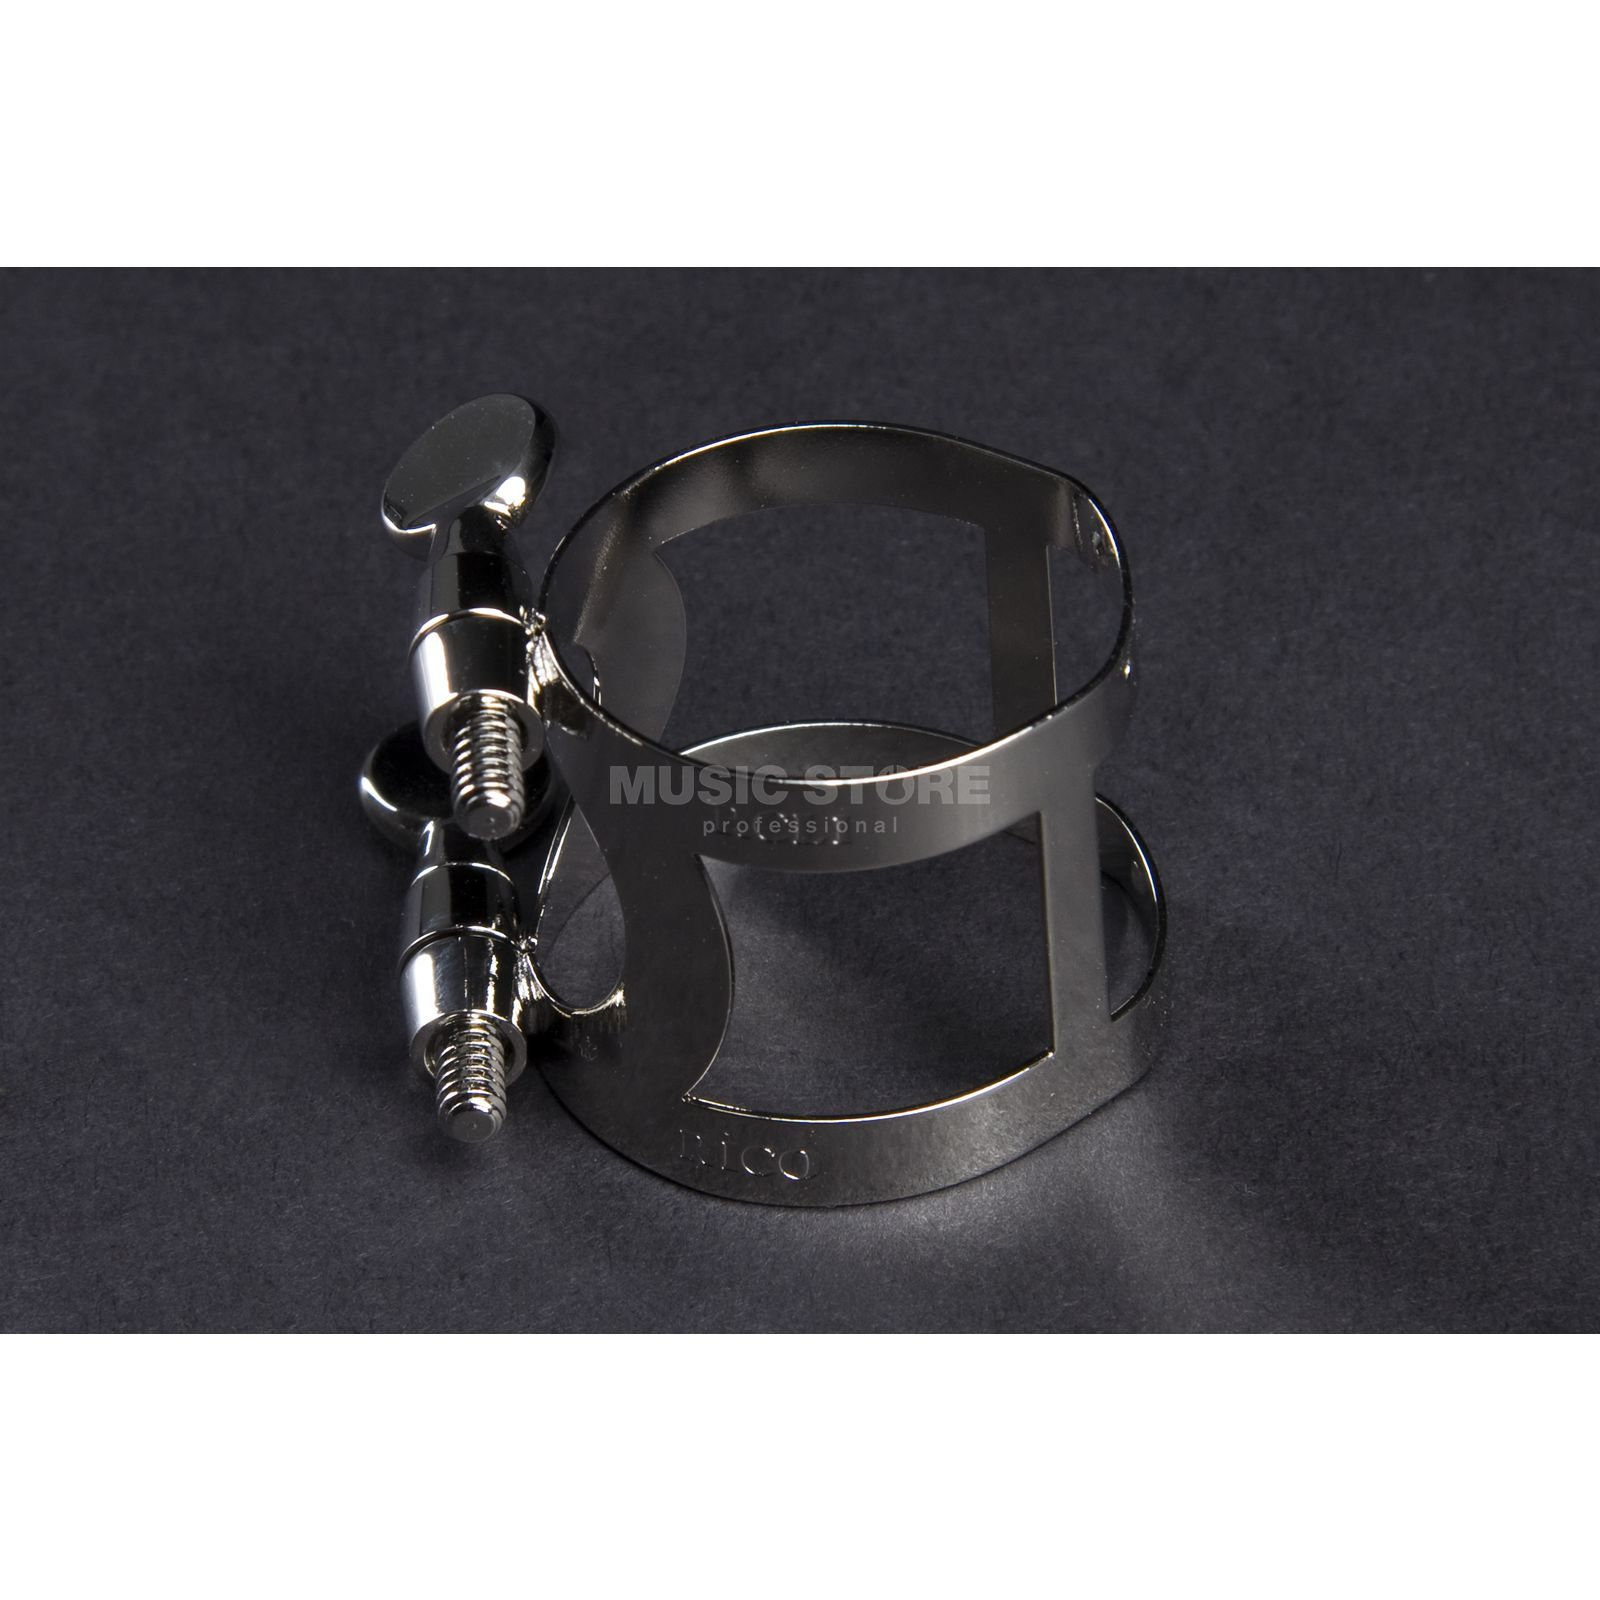 D'Addario Bb-Clarinet Ligature For Boehm System Product Image